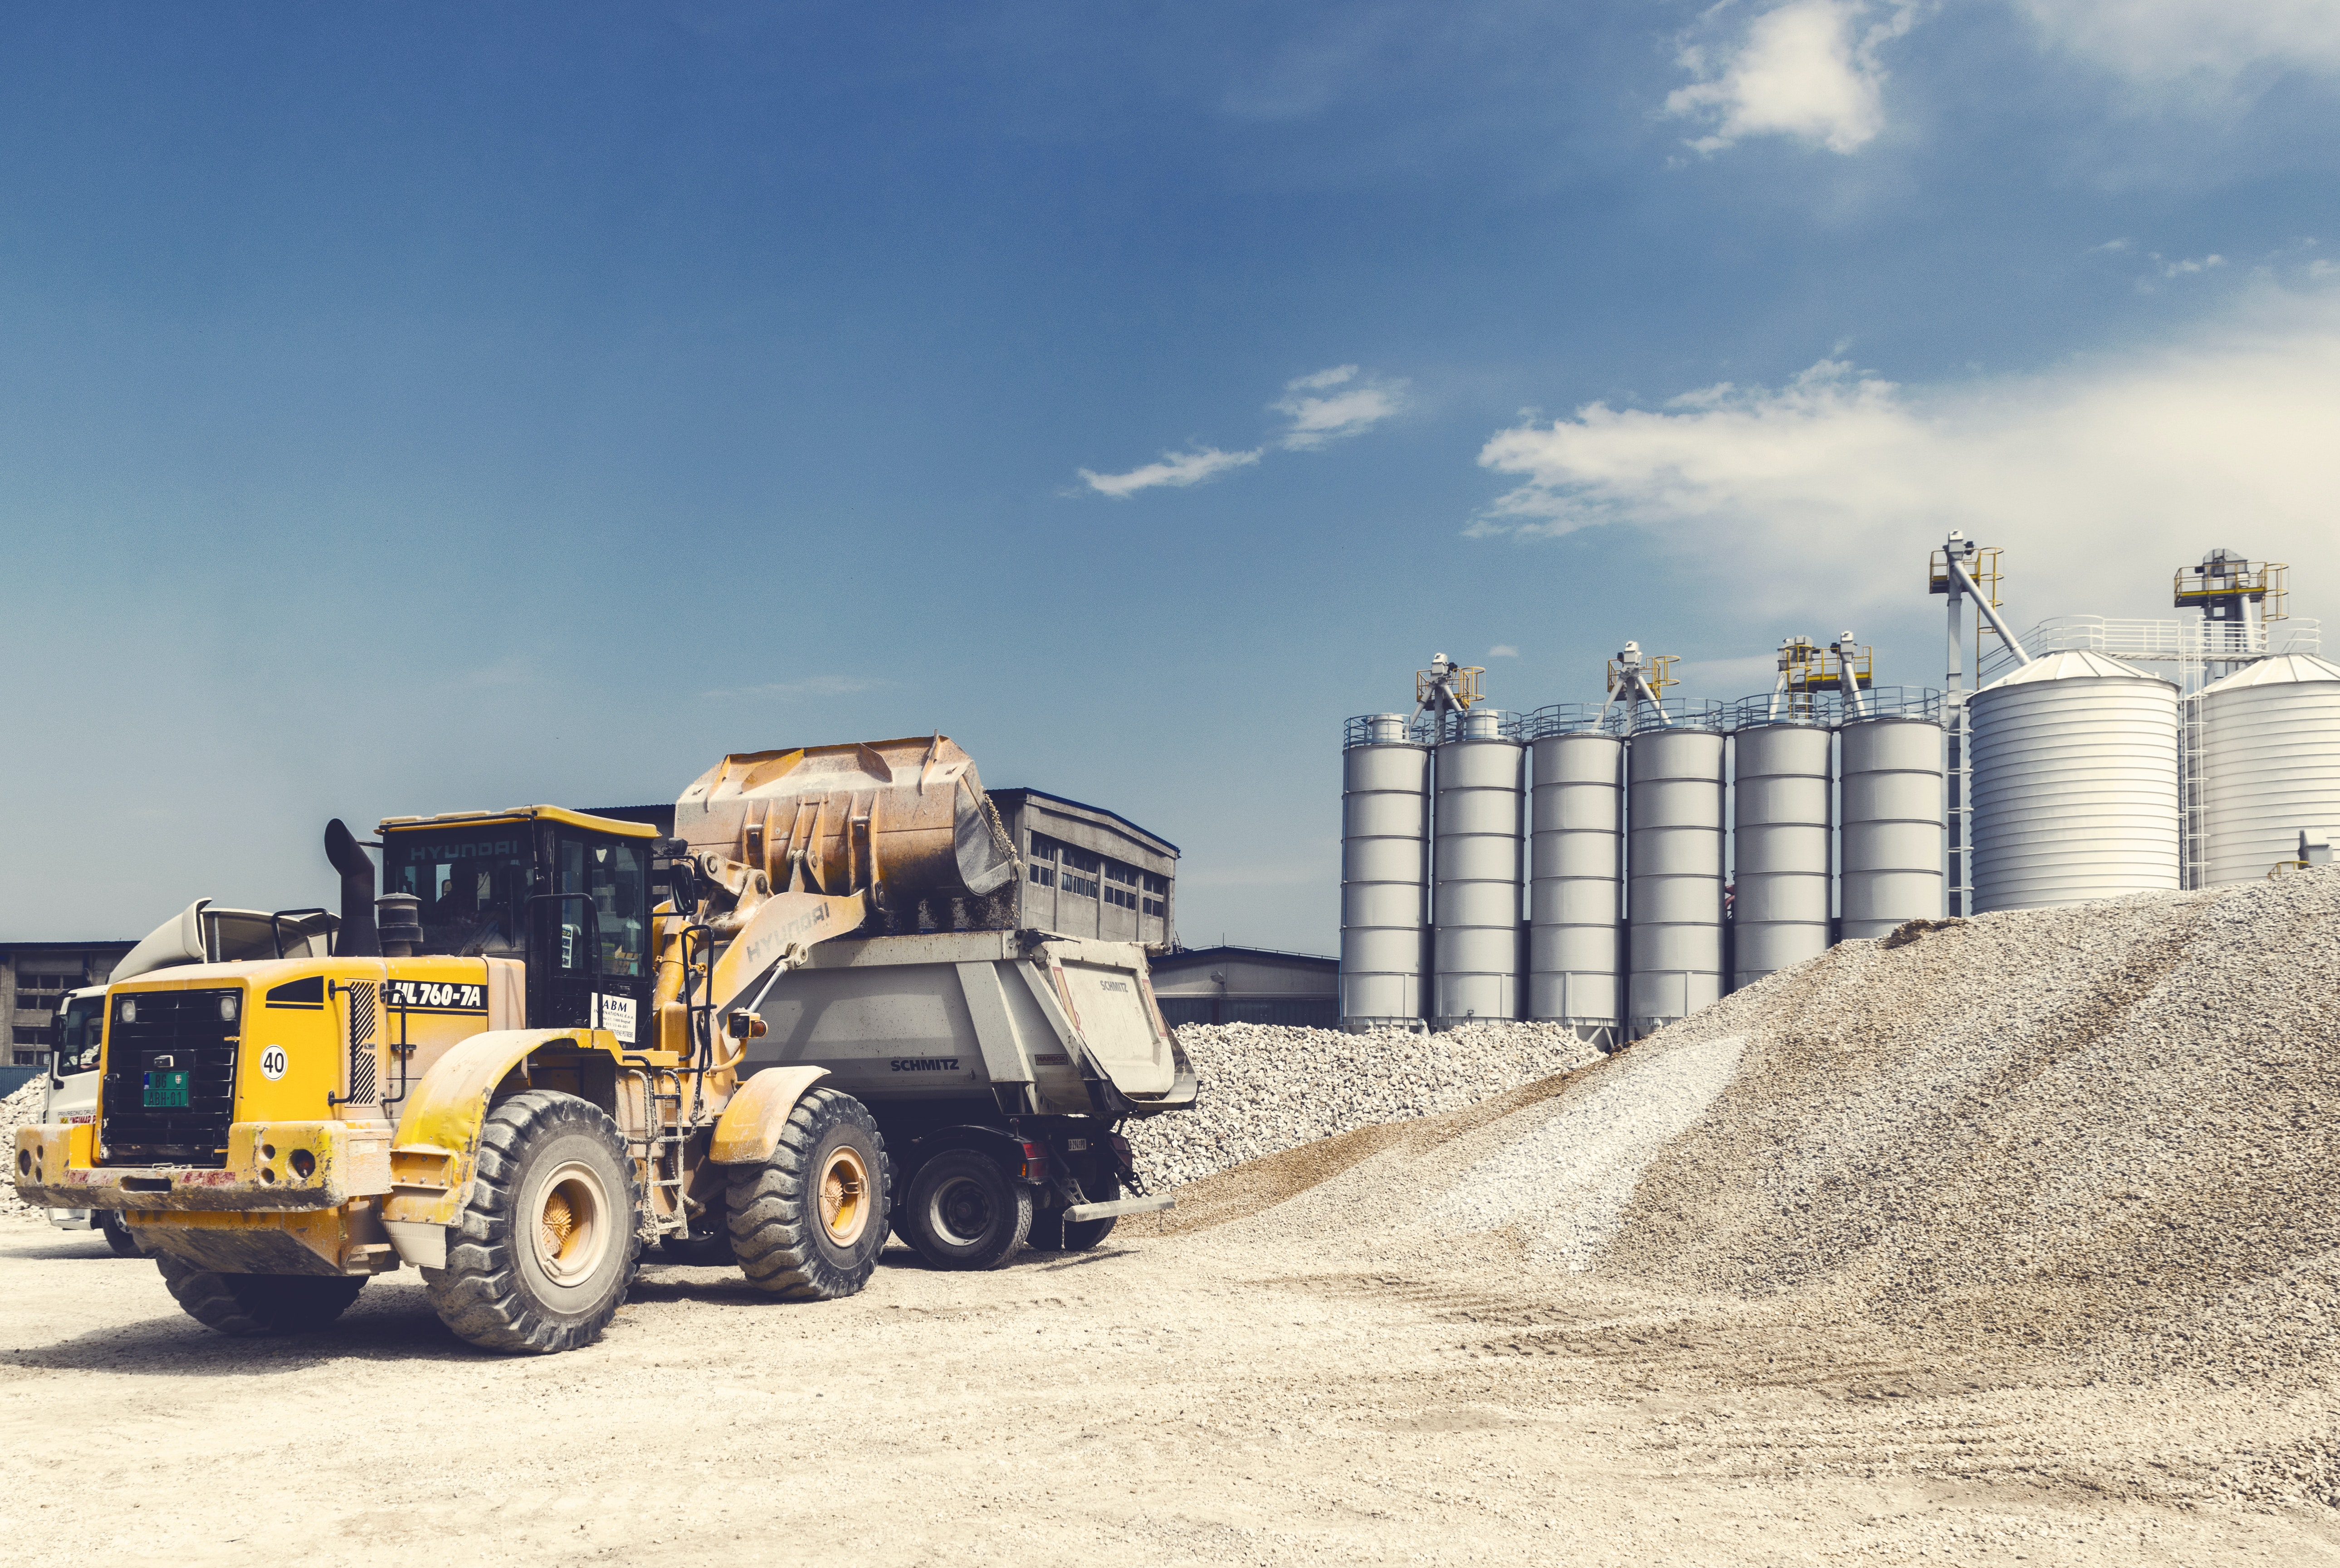 3 Huge Benefits of Heavy Equipment Tracking for Rental Companies